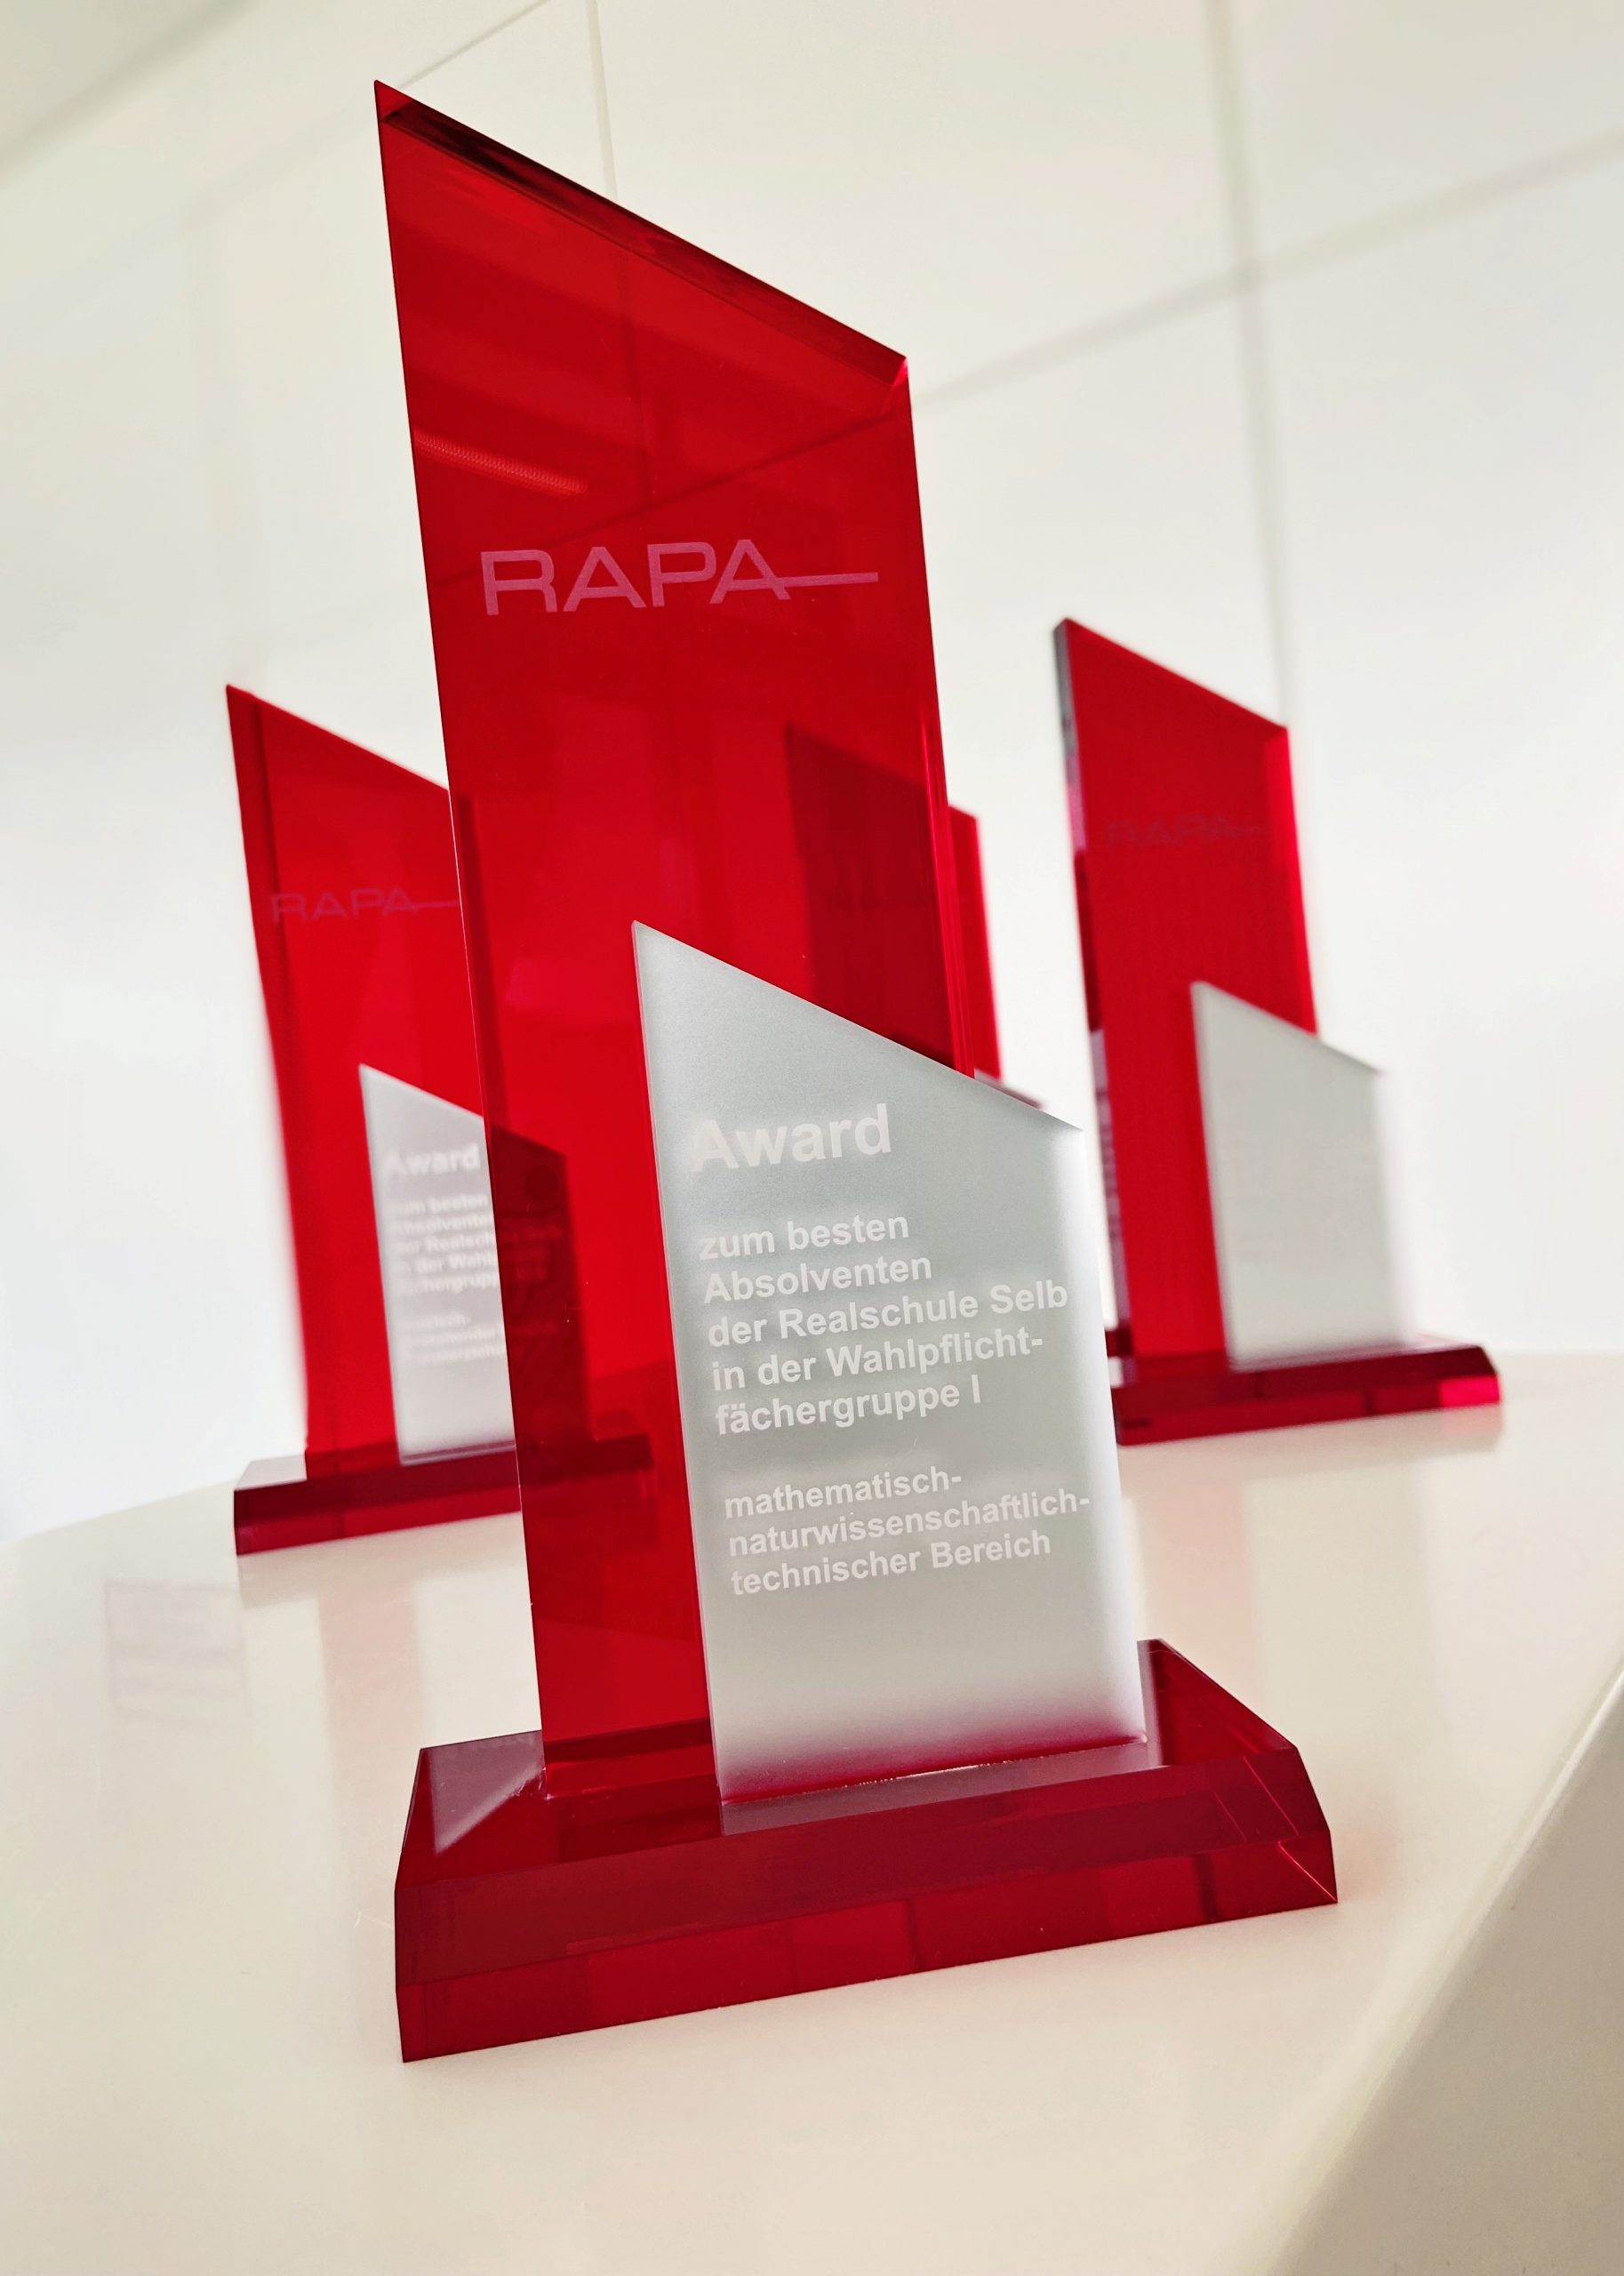 RAPA Excellence Award for Realschule Graduates